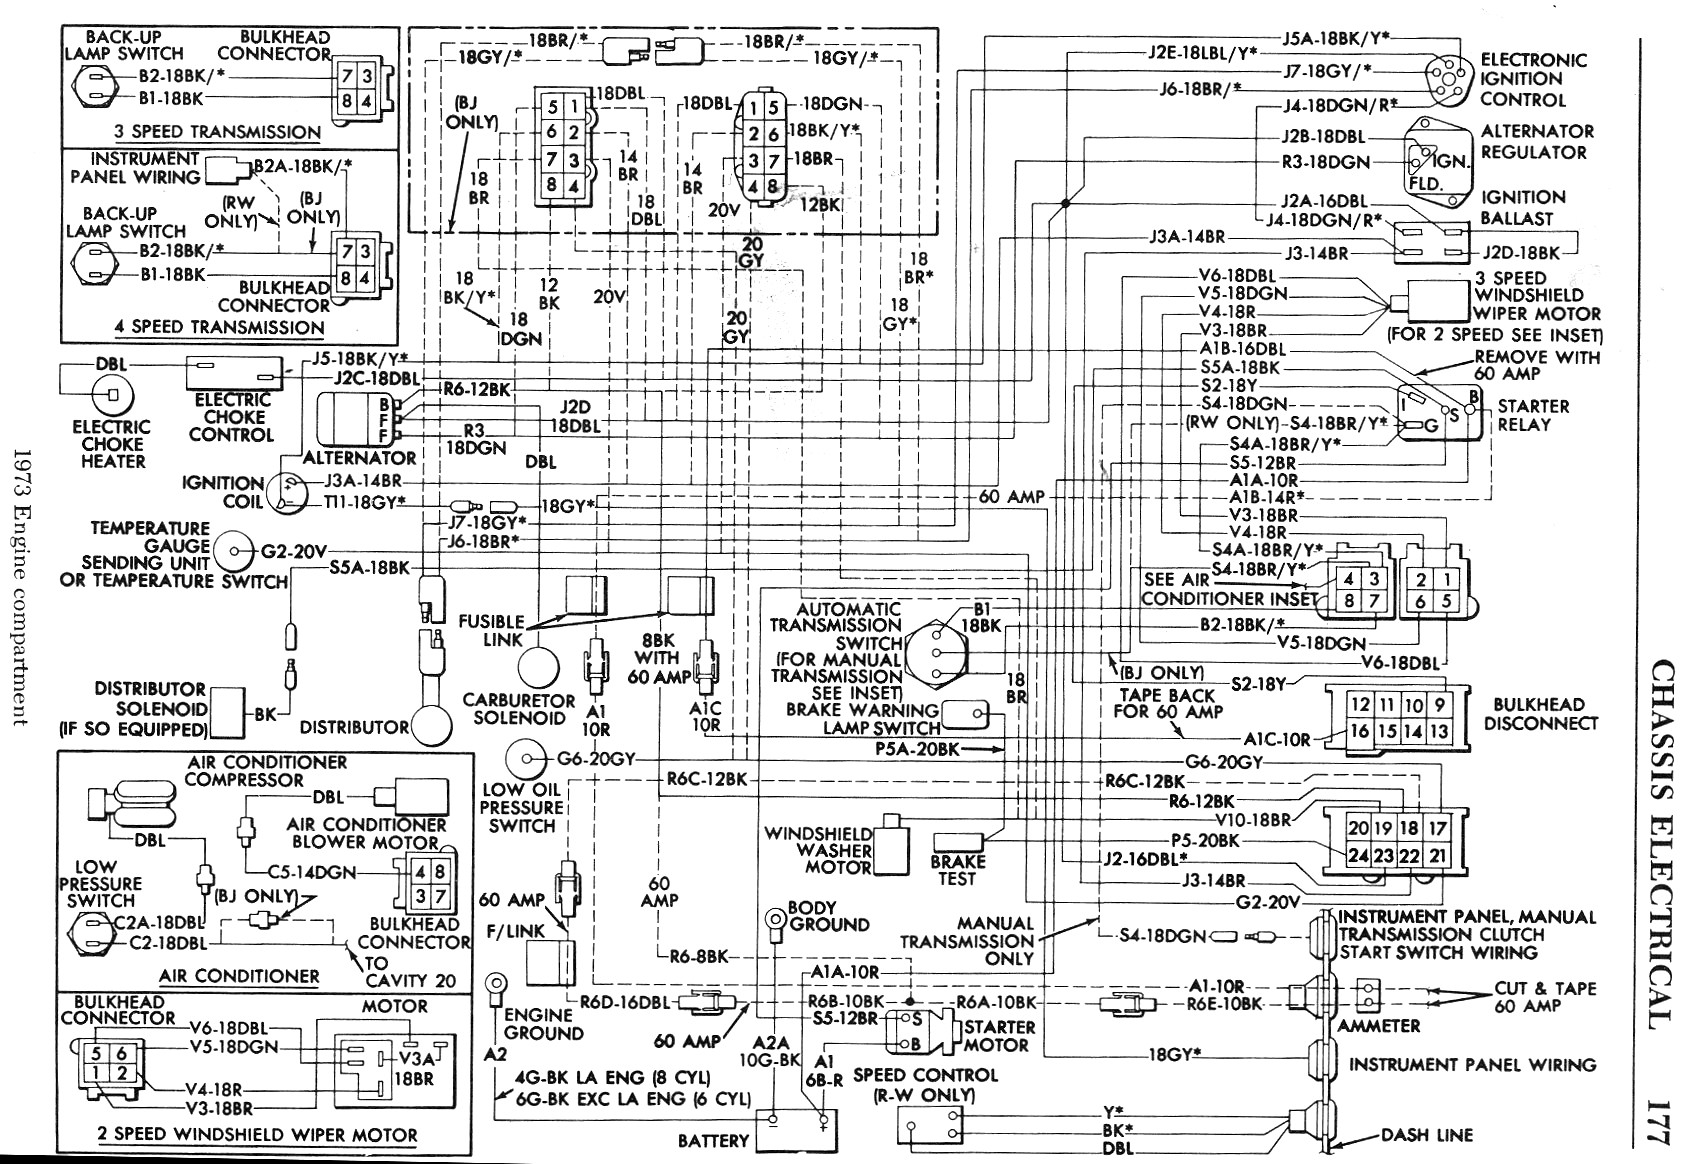 5098823 73B BodyEngineCompartmentWiringDiagram mopar wiring diagram powerflex 755 wiring diagrams \u2022 free wiring  at fashall.co